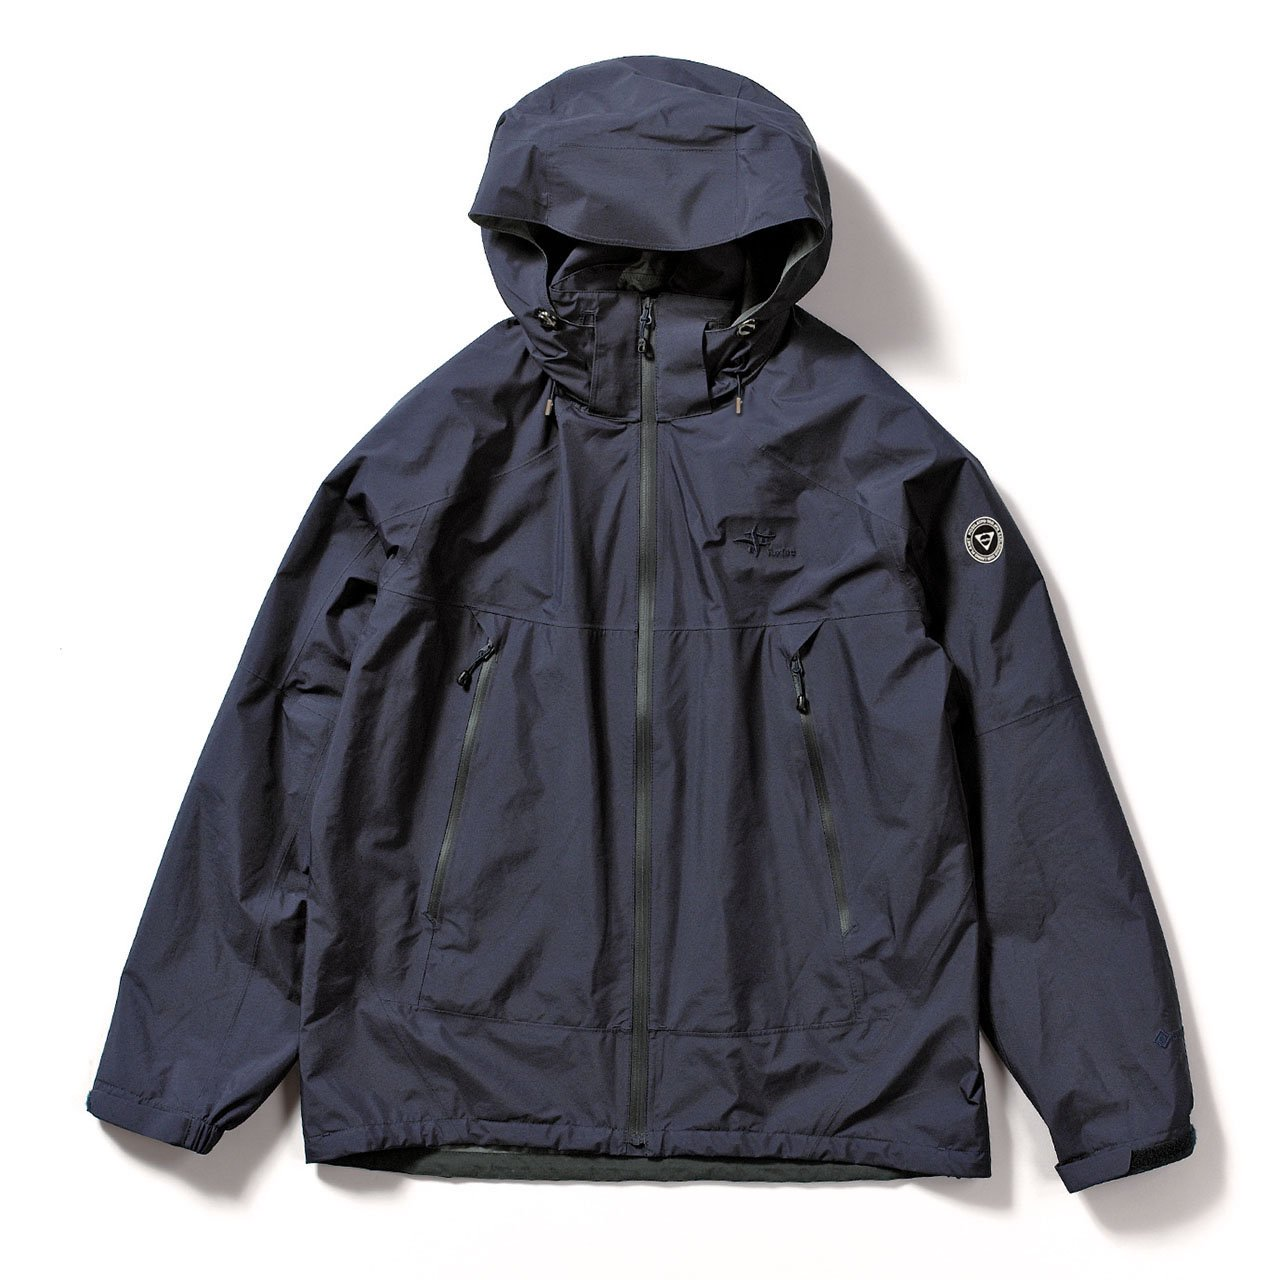 <img class='new_mark_img1' src='https://img.shop-pro.jp/img/new/icons1.gif' style='border:none;display:inline;margin:0px;padding:0px;width:auto;' />Foxfire×HOSU GORE-TEX アーバントレックジャケット(LIMITEDモデル)/インディゴ